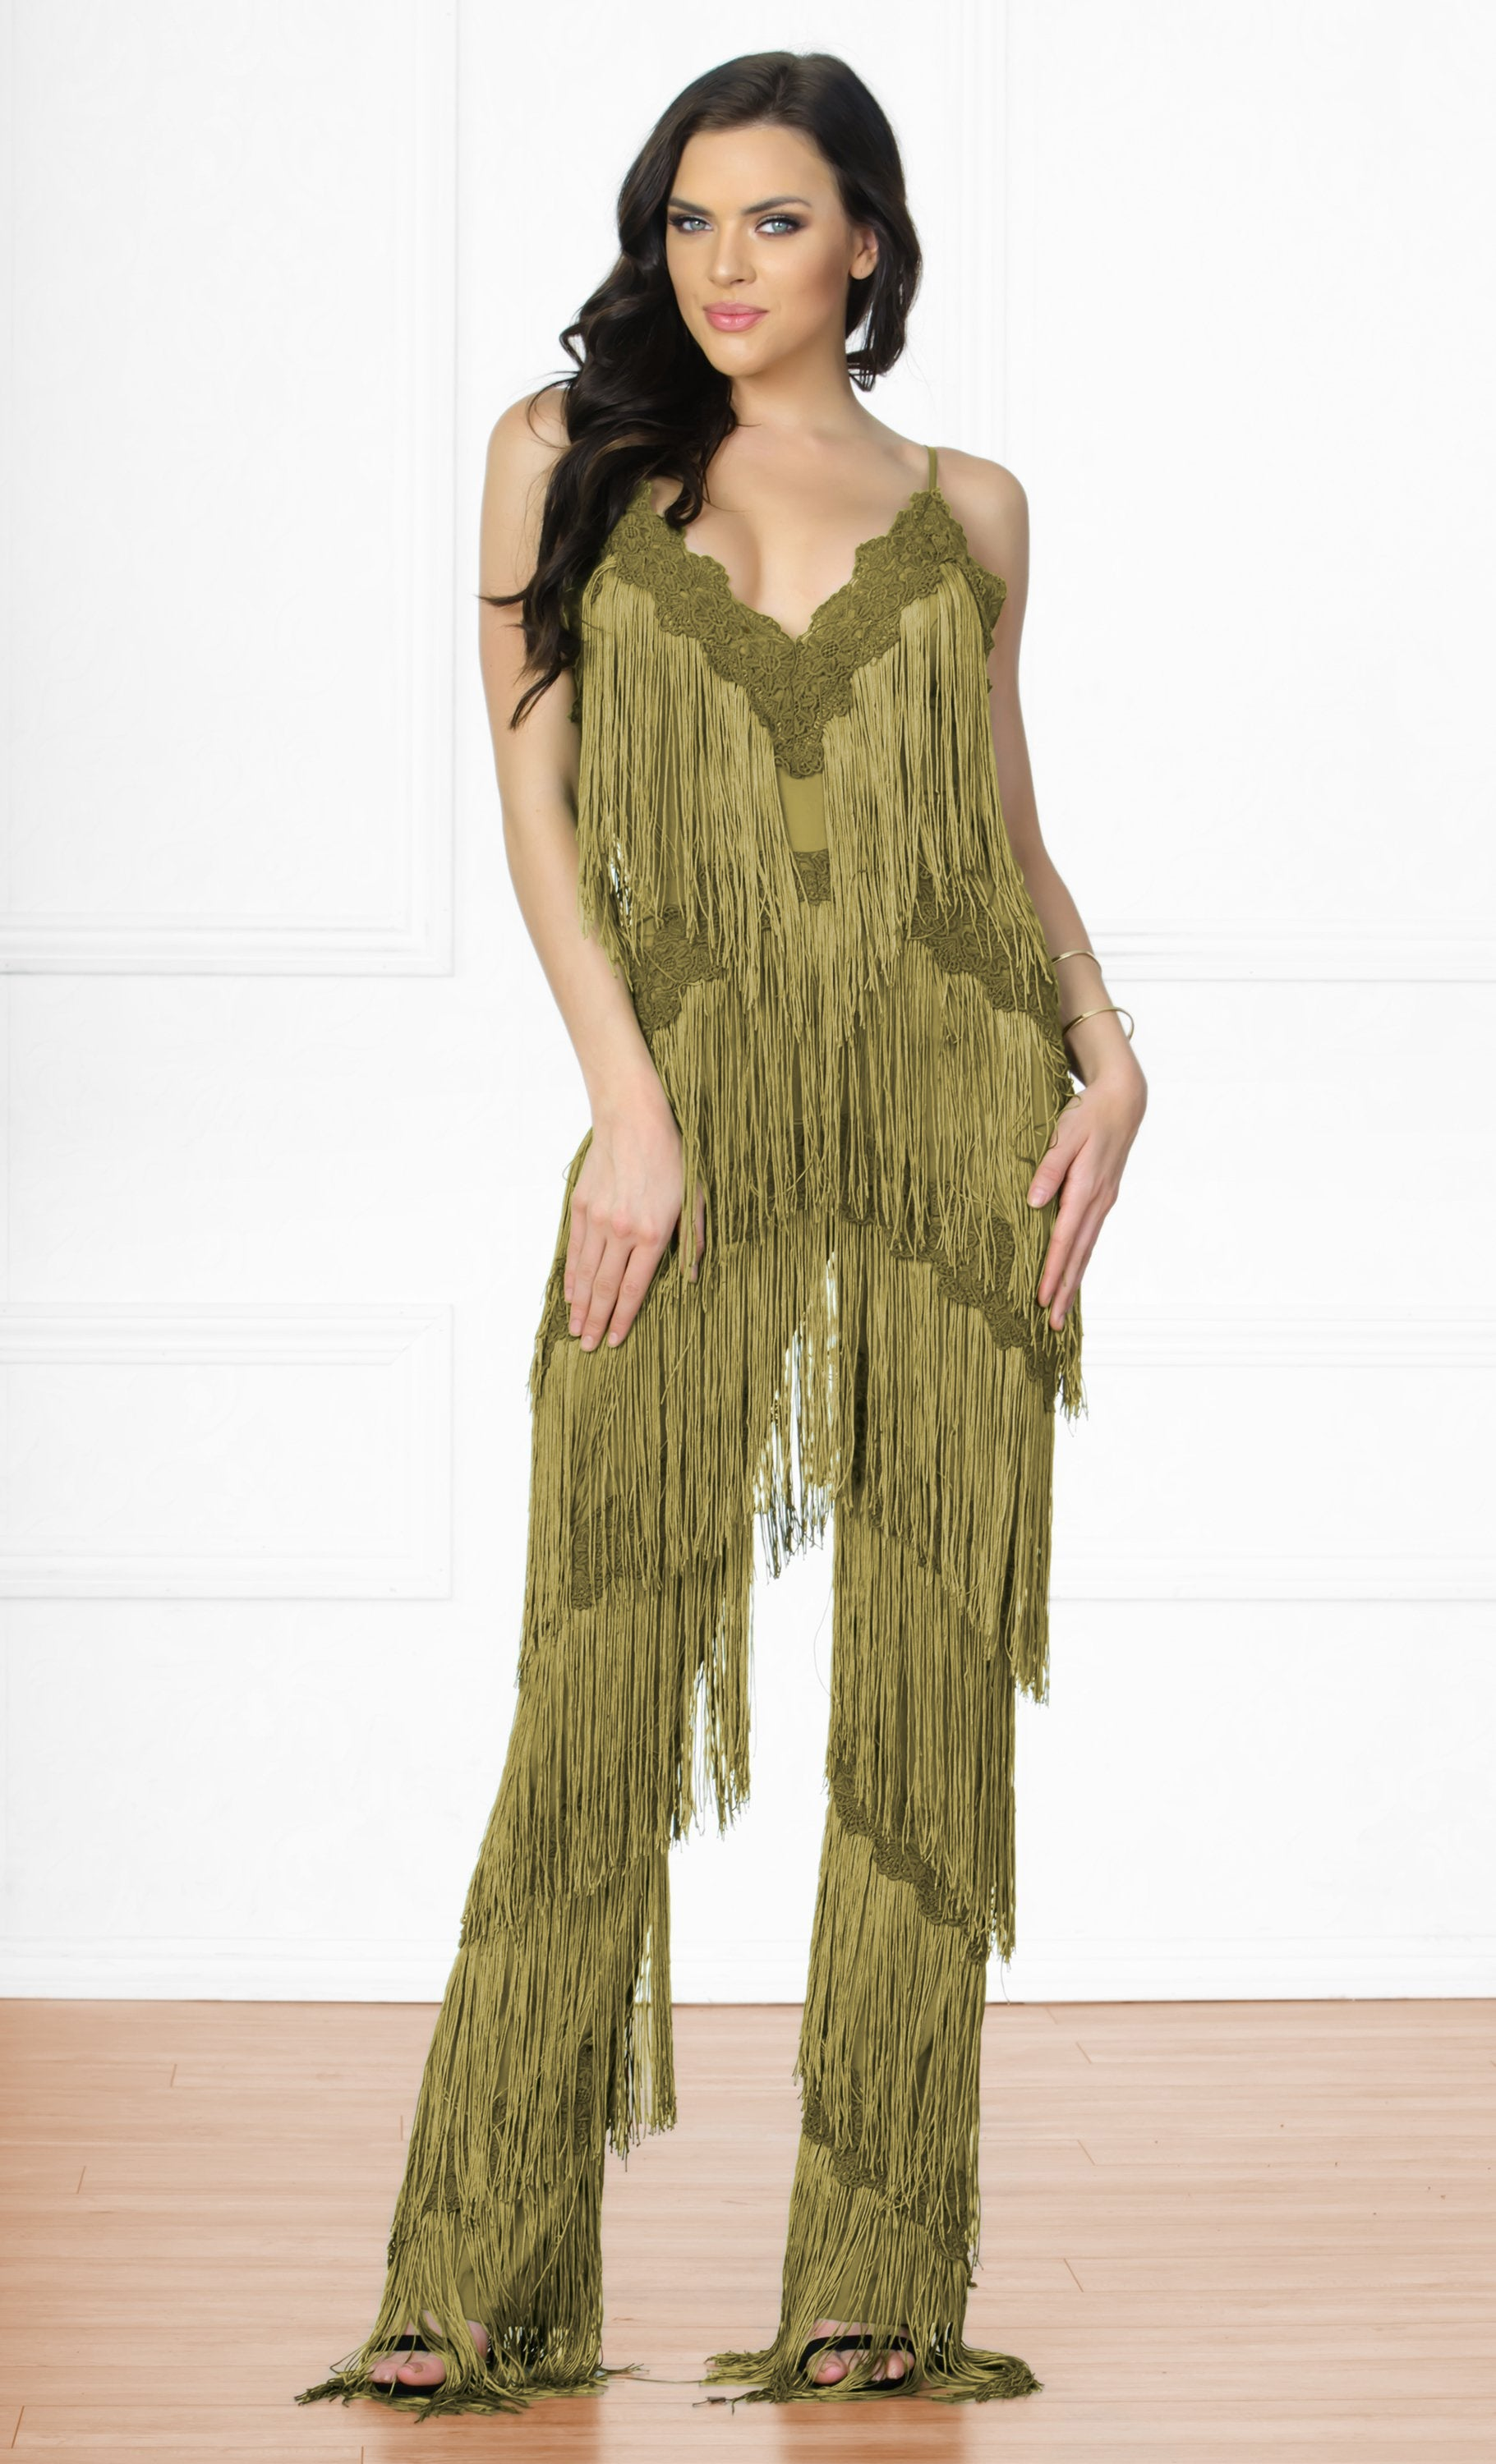 6af0ba0e856c Indie XO Tinsel Town Army Green Sleeveless Spaghetti Strap Plunge V Neck  Fringe Tiered Jumpsuit -